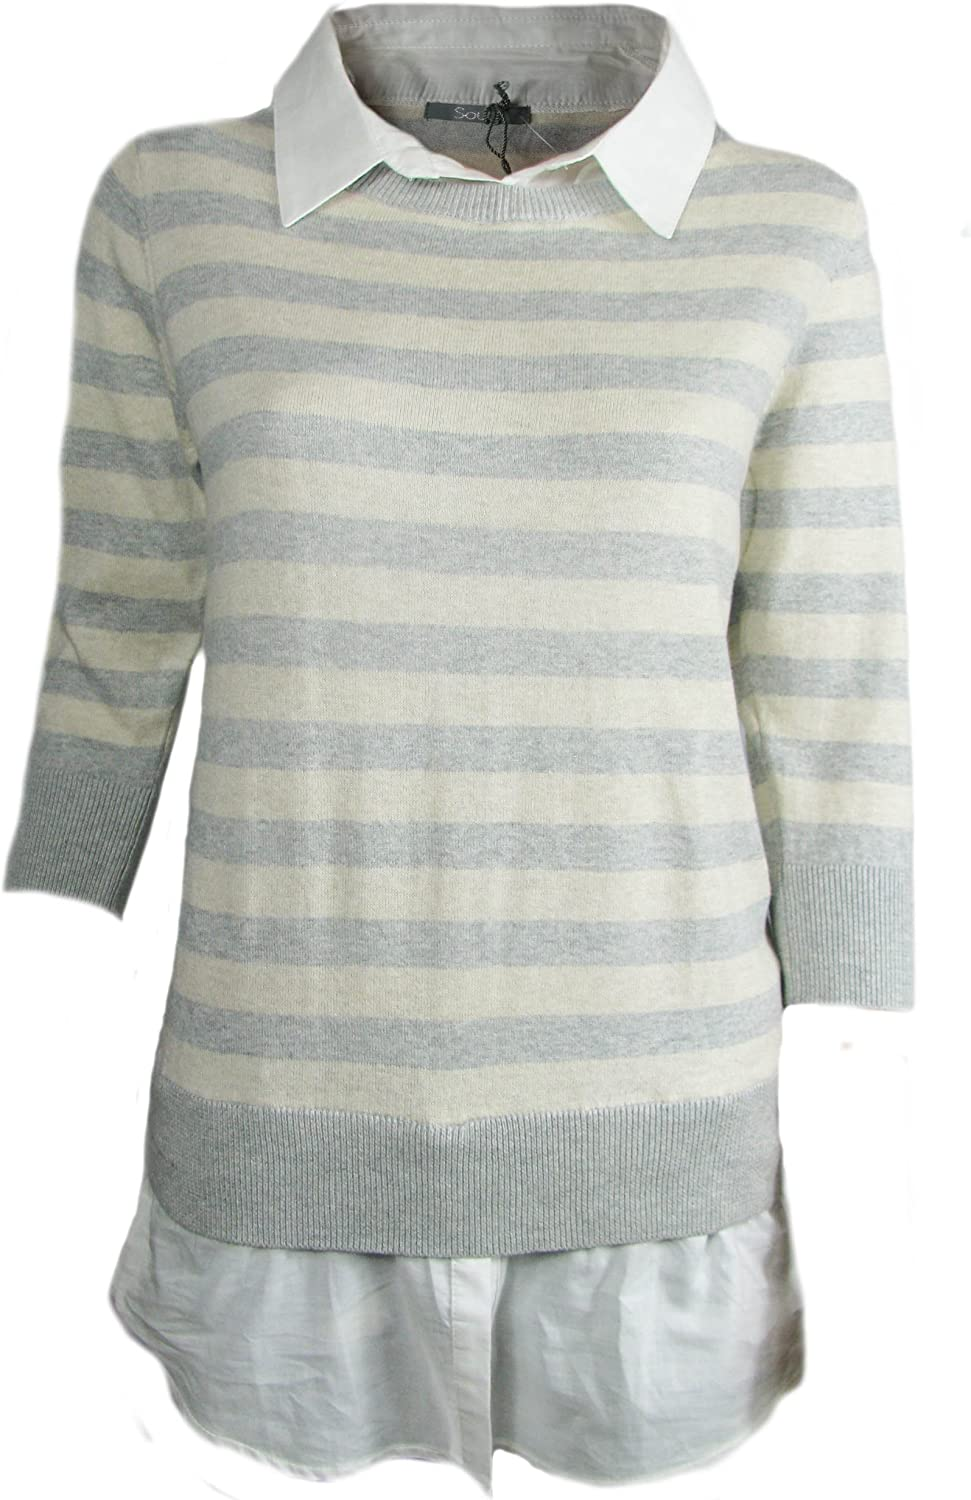 TopsandDresses Womens Striped Jumpers with Sewn in Shirt in 2 Colours Pink Stripe or Cream in Ladies Sizes Grey 18